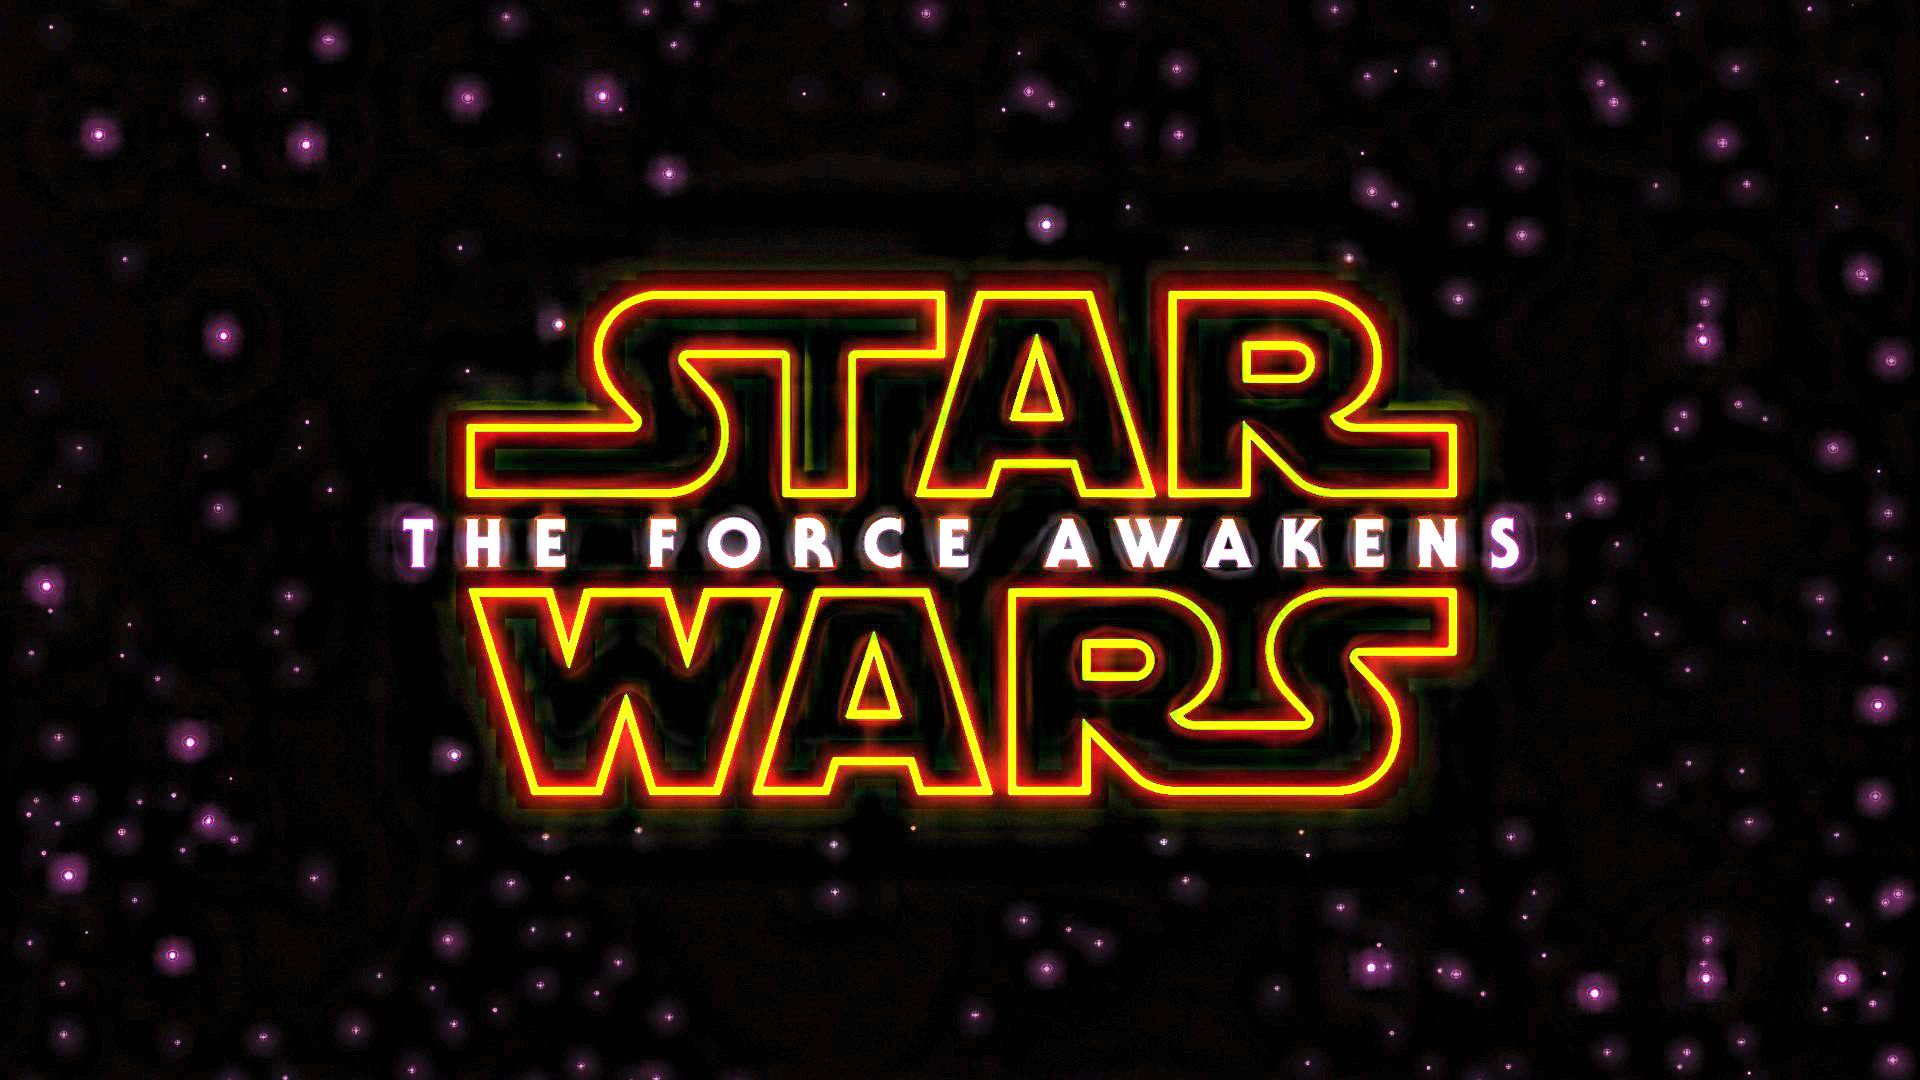 star wars force awakens 1080p wallpaper